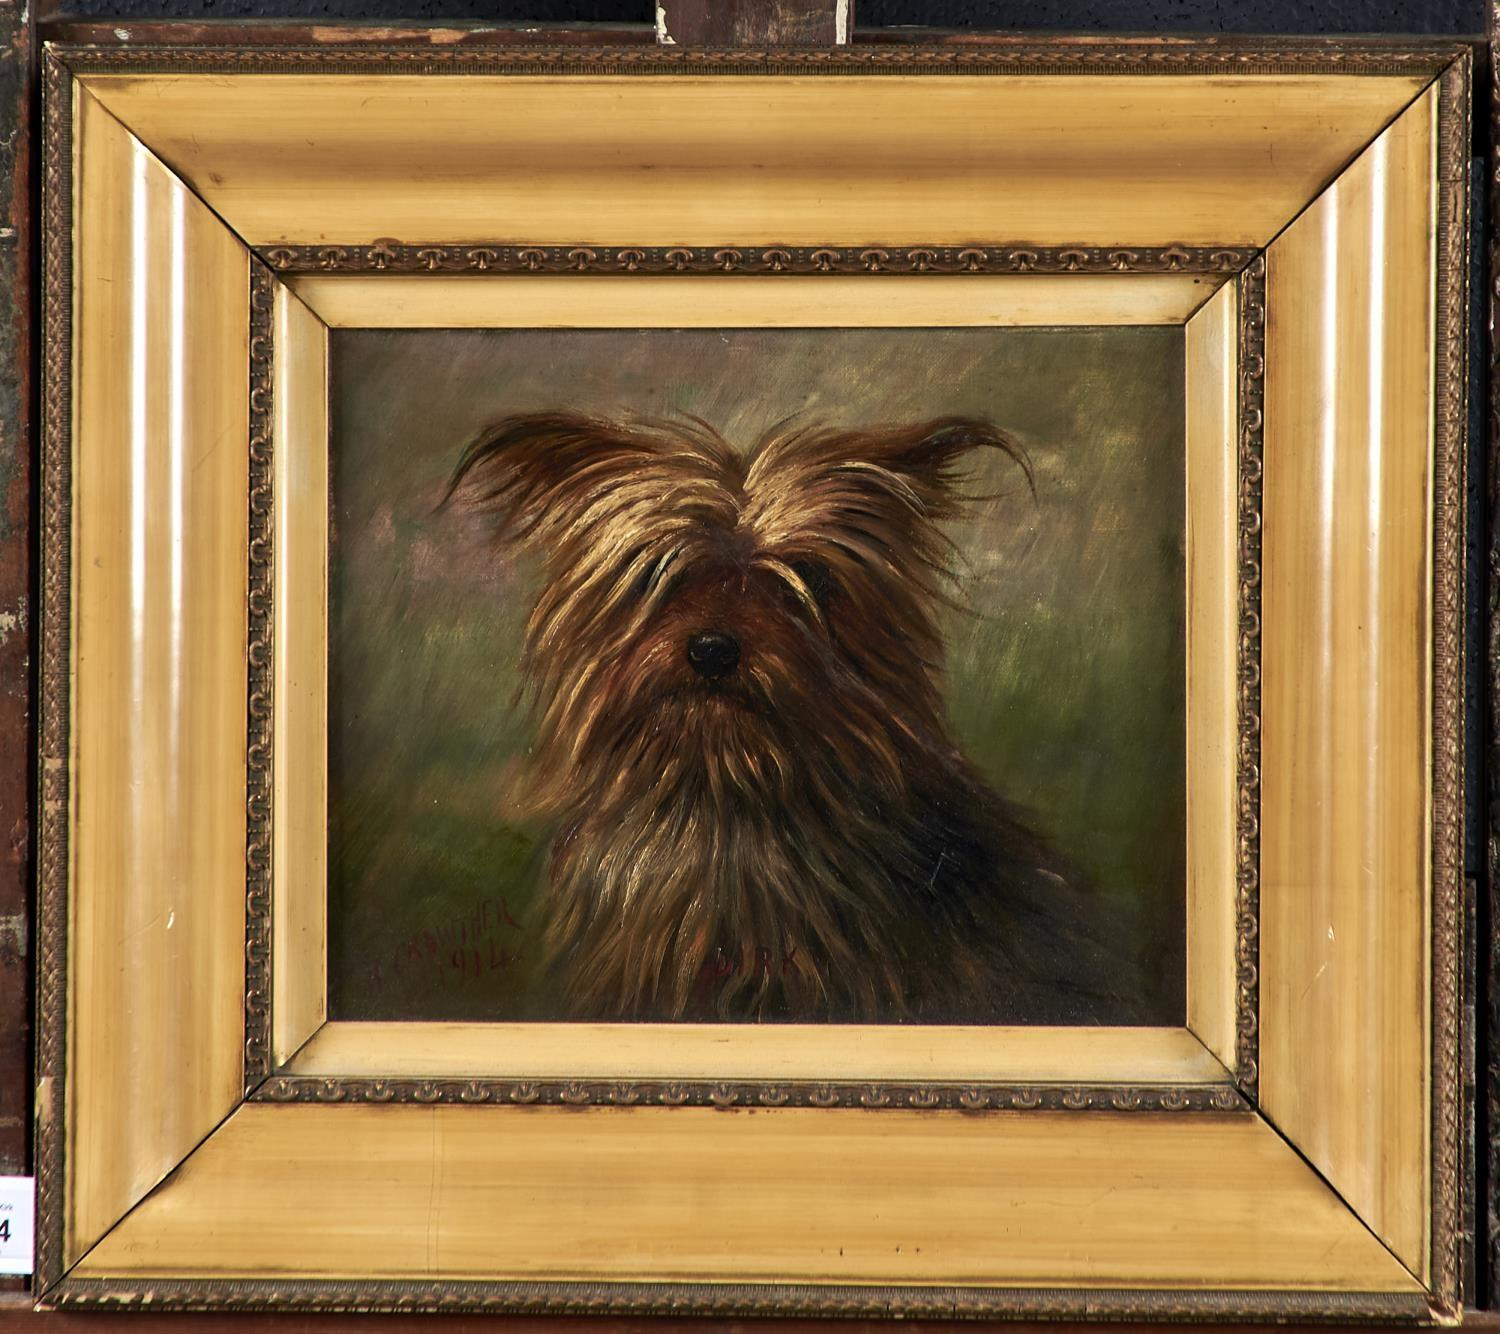 """HENRY CROWTHER, FL 1875-1933 - """"DIRK"""", A YORKSHIRE TERRIER, SIGNED, DATED 1914 AND INSCRIBED (IN - Image 2 of 3"""